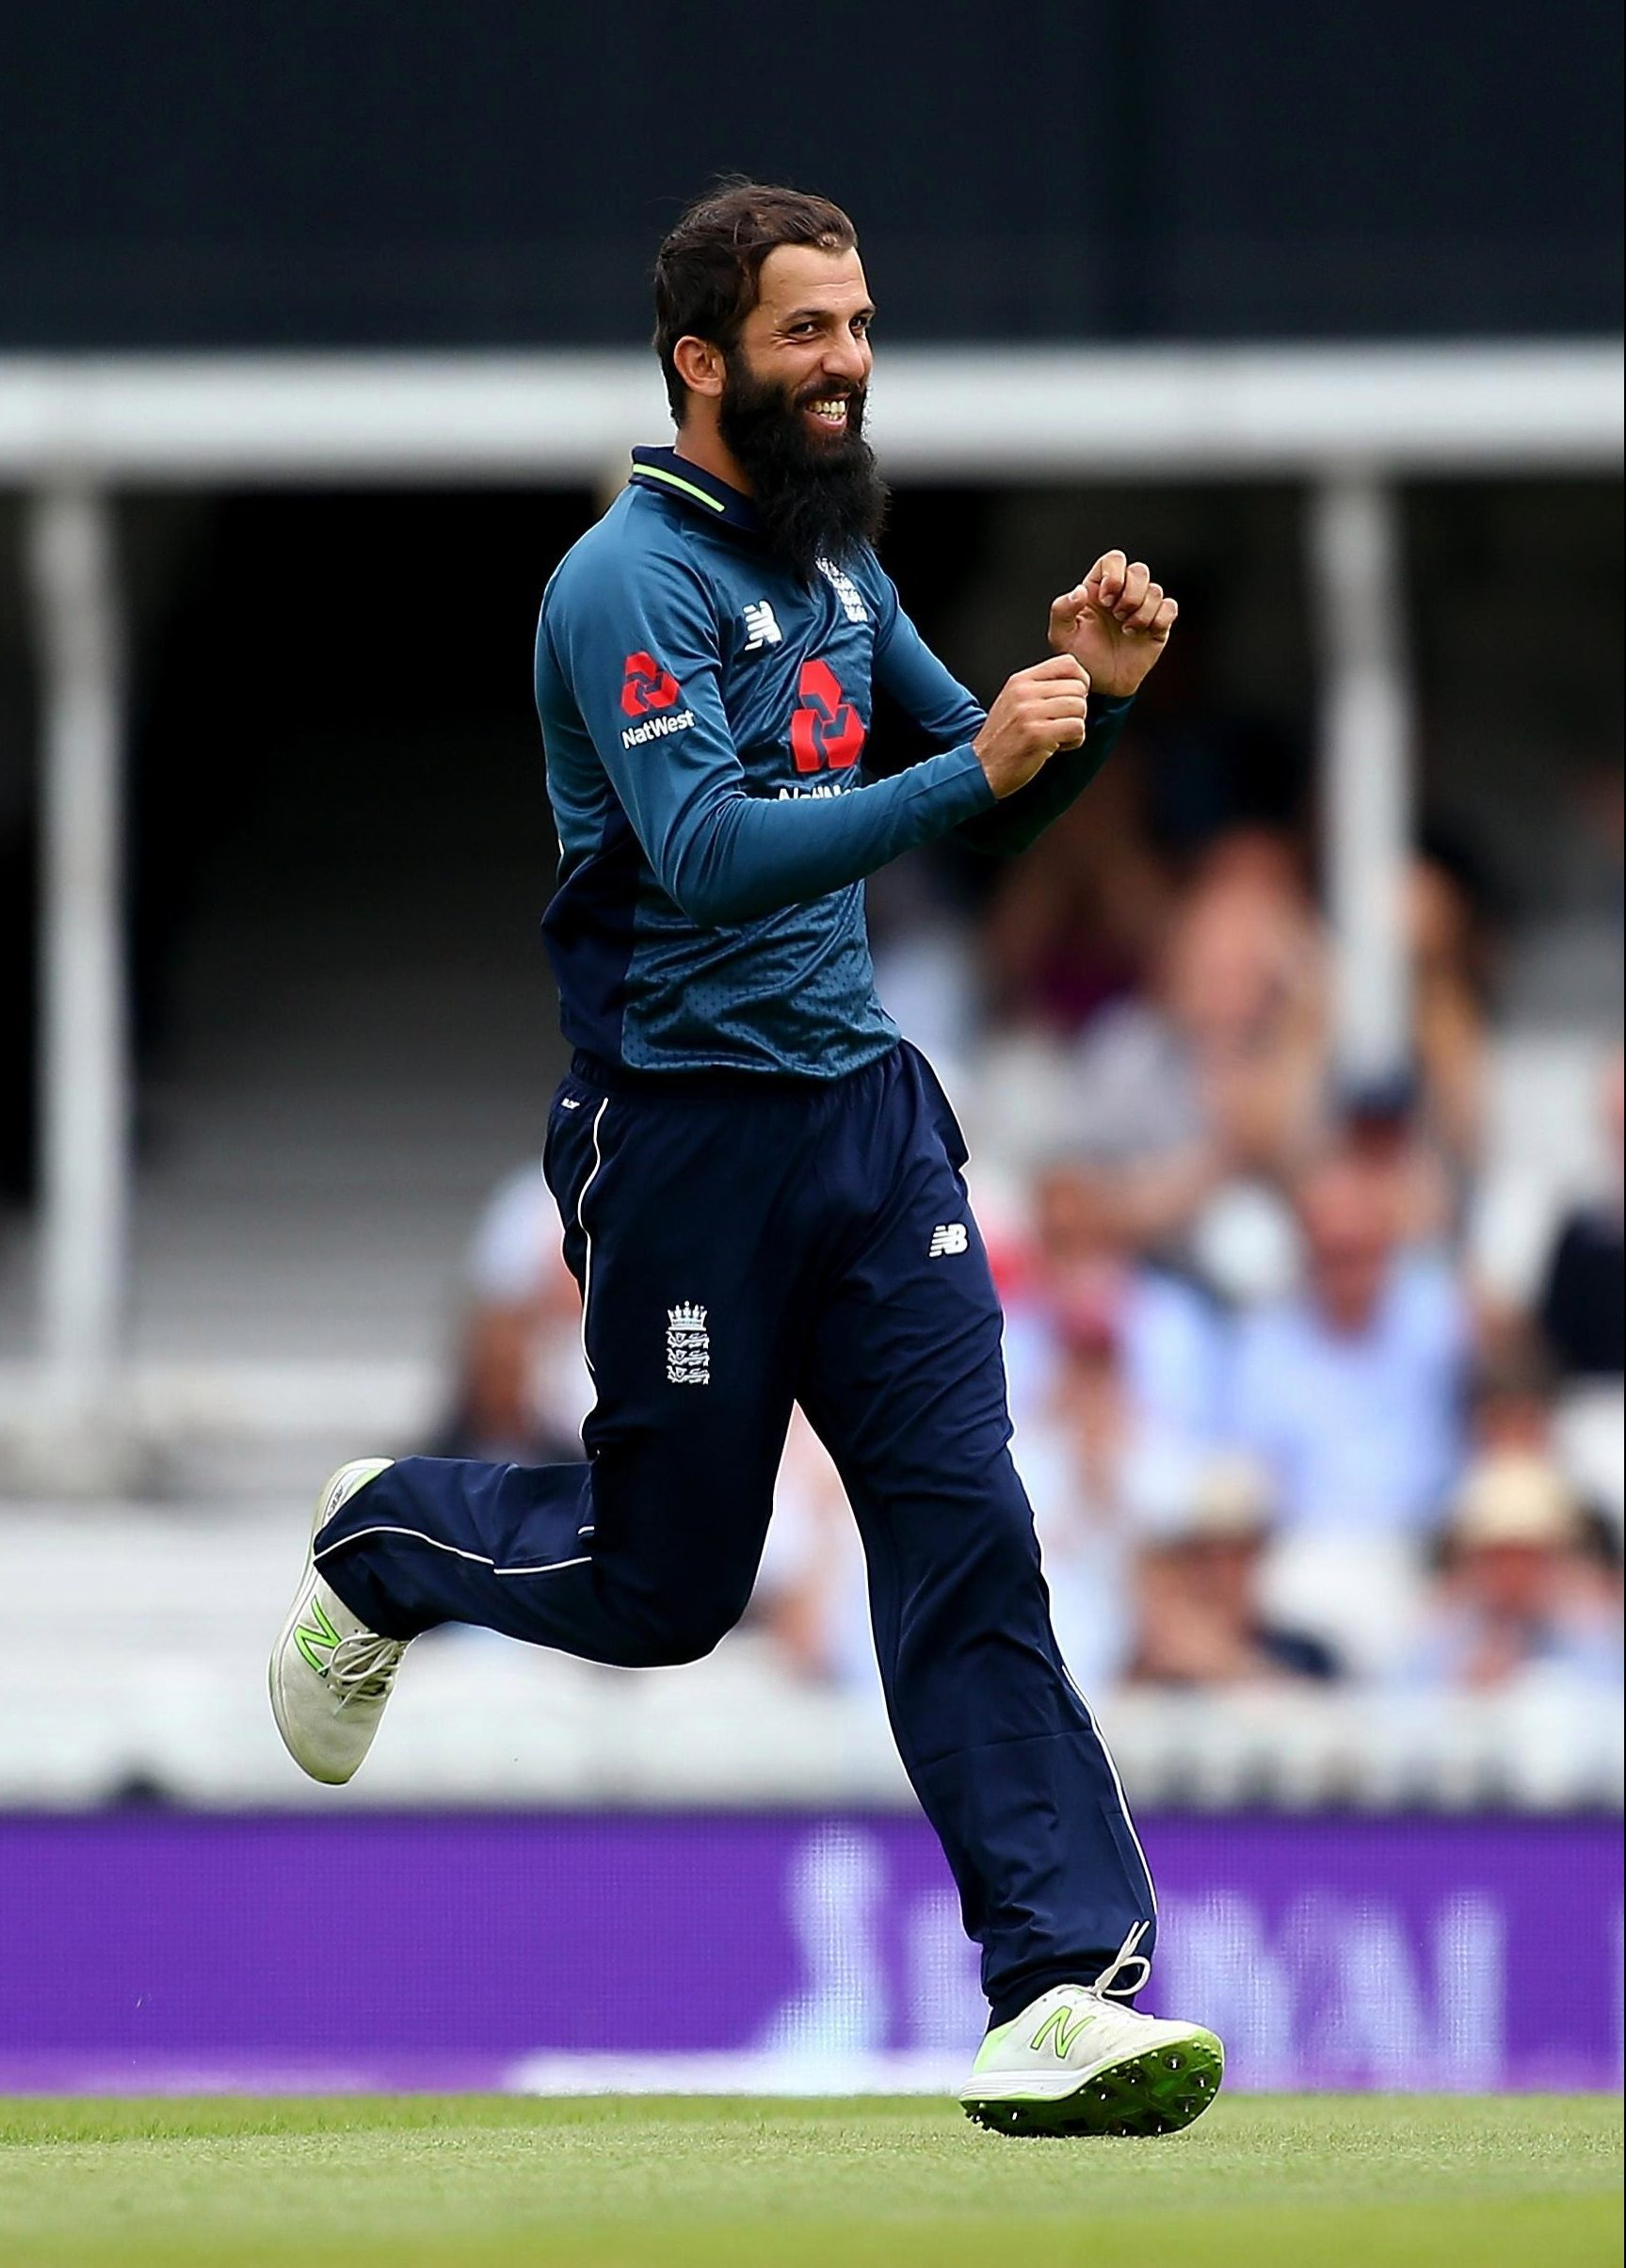 Moeen Ali took three of the first four wickets to remind Australia of his talents